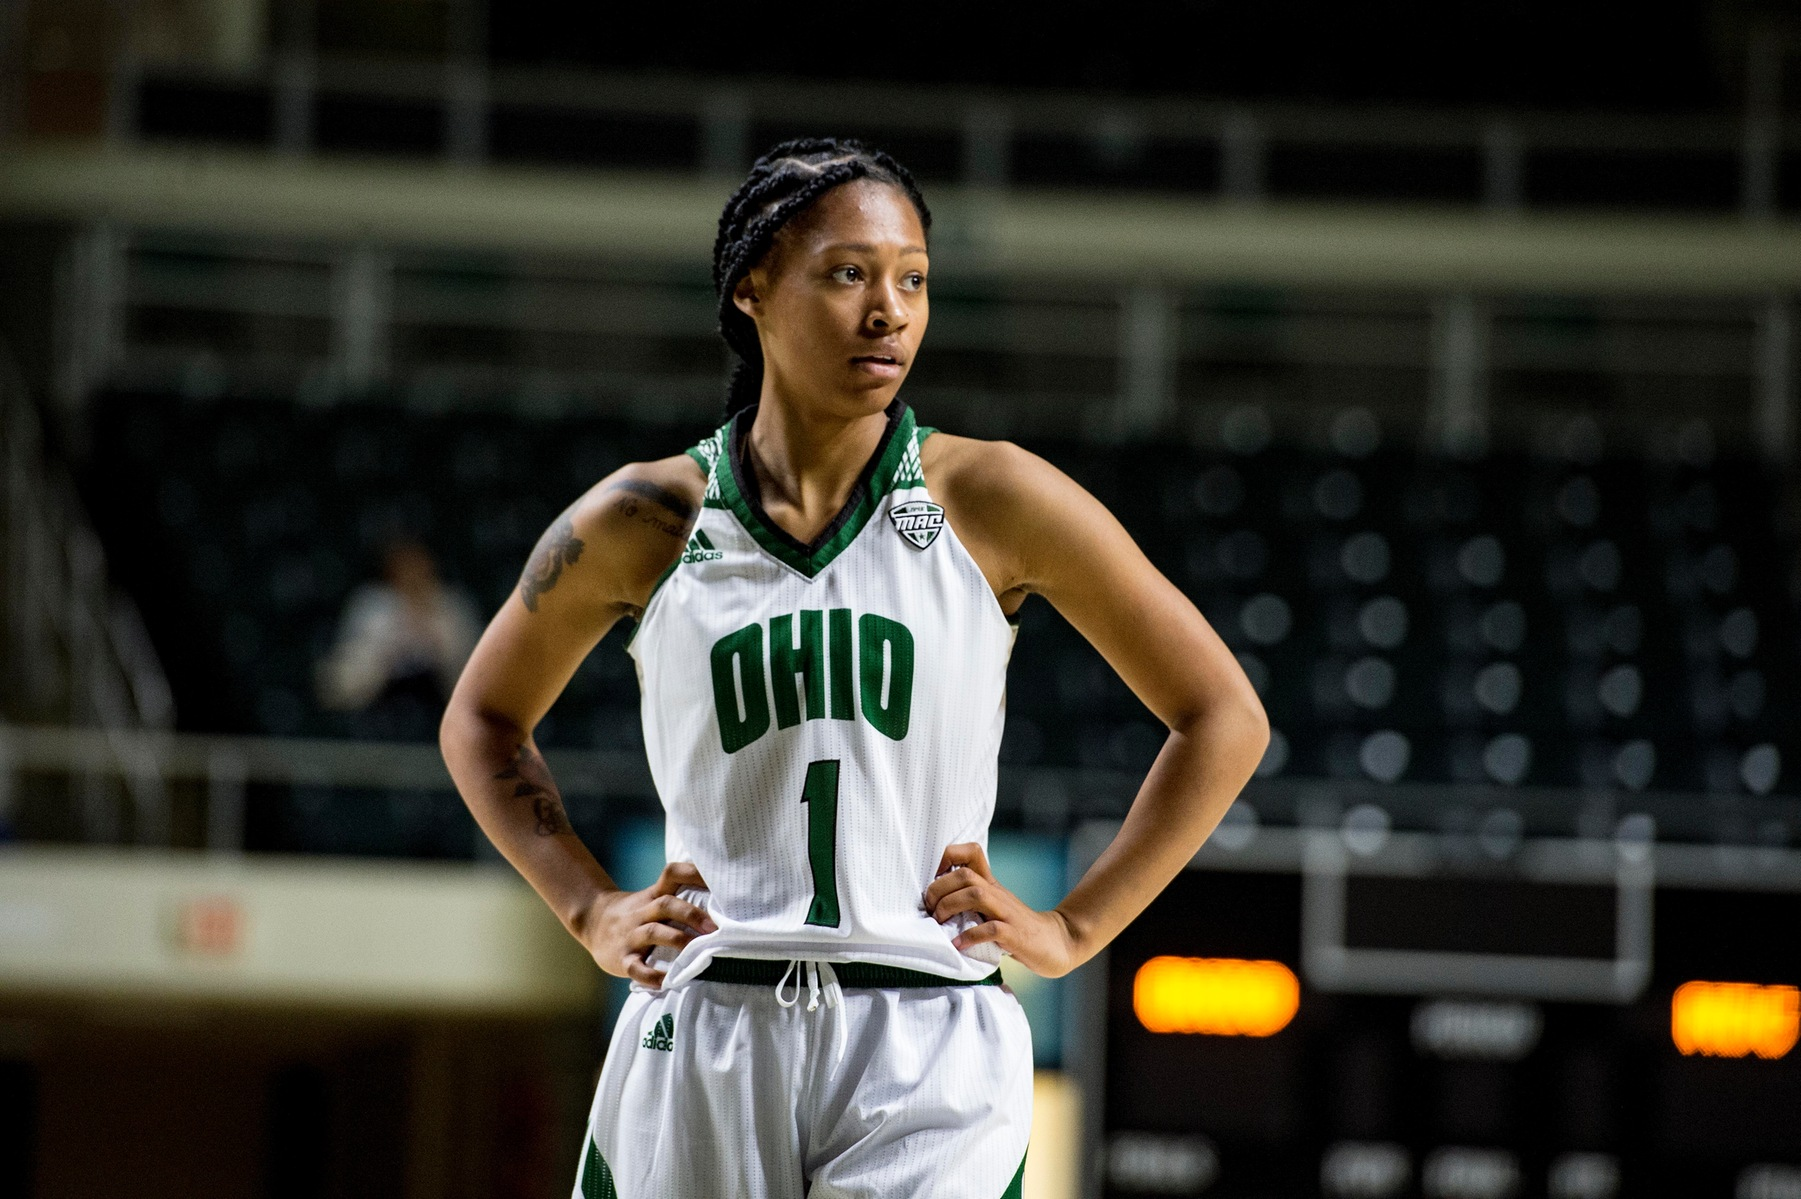 Ohio Women's Basketball's Hooks Named To 2018-19 Preseason All-MAC East Division Team